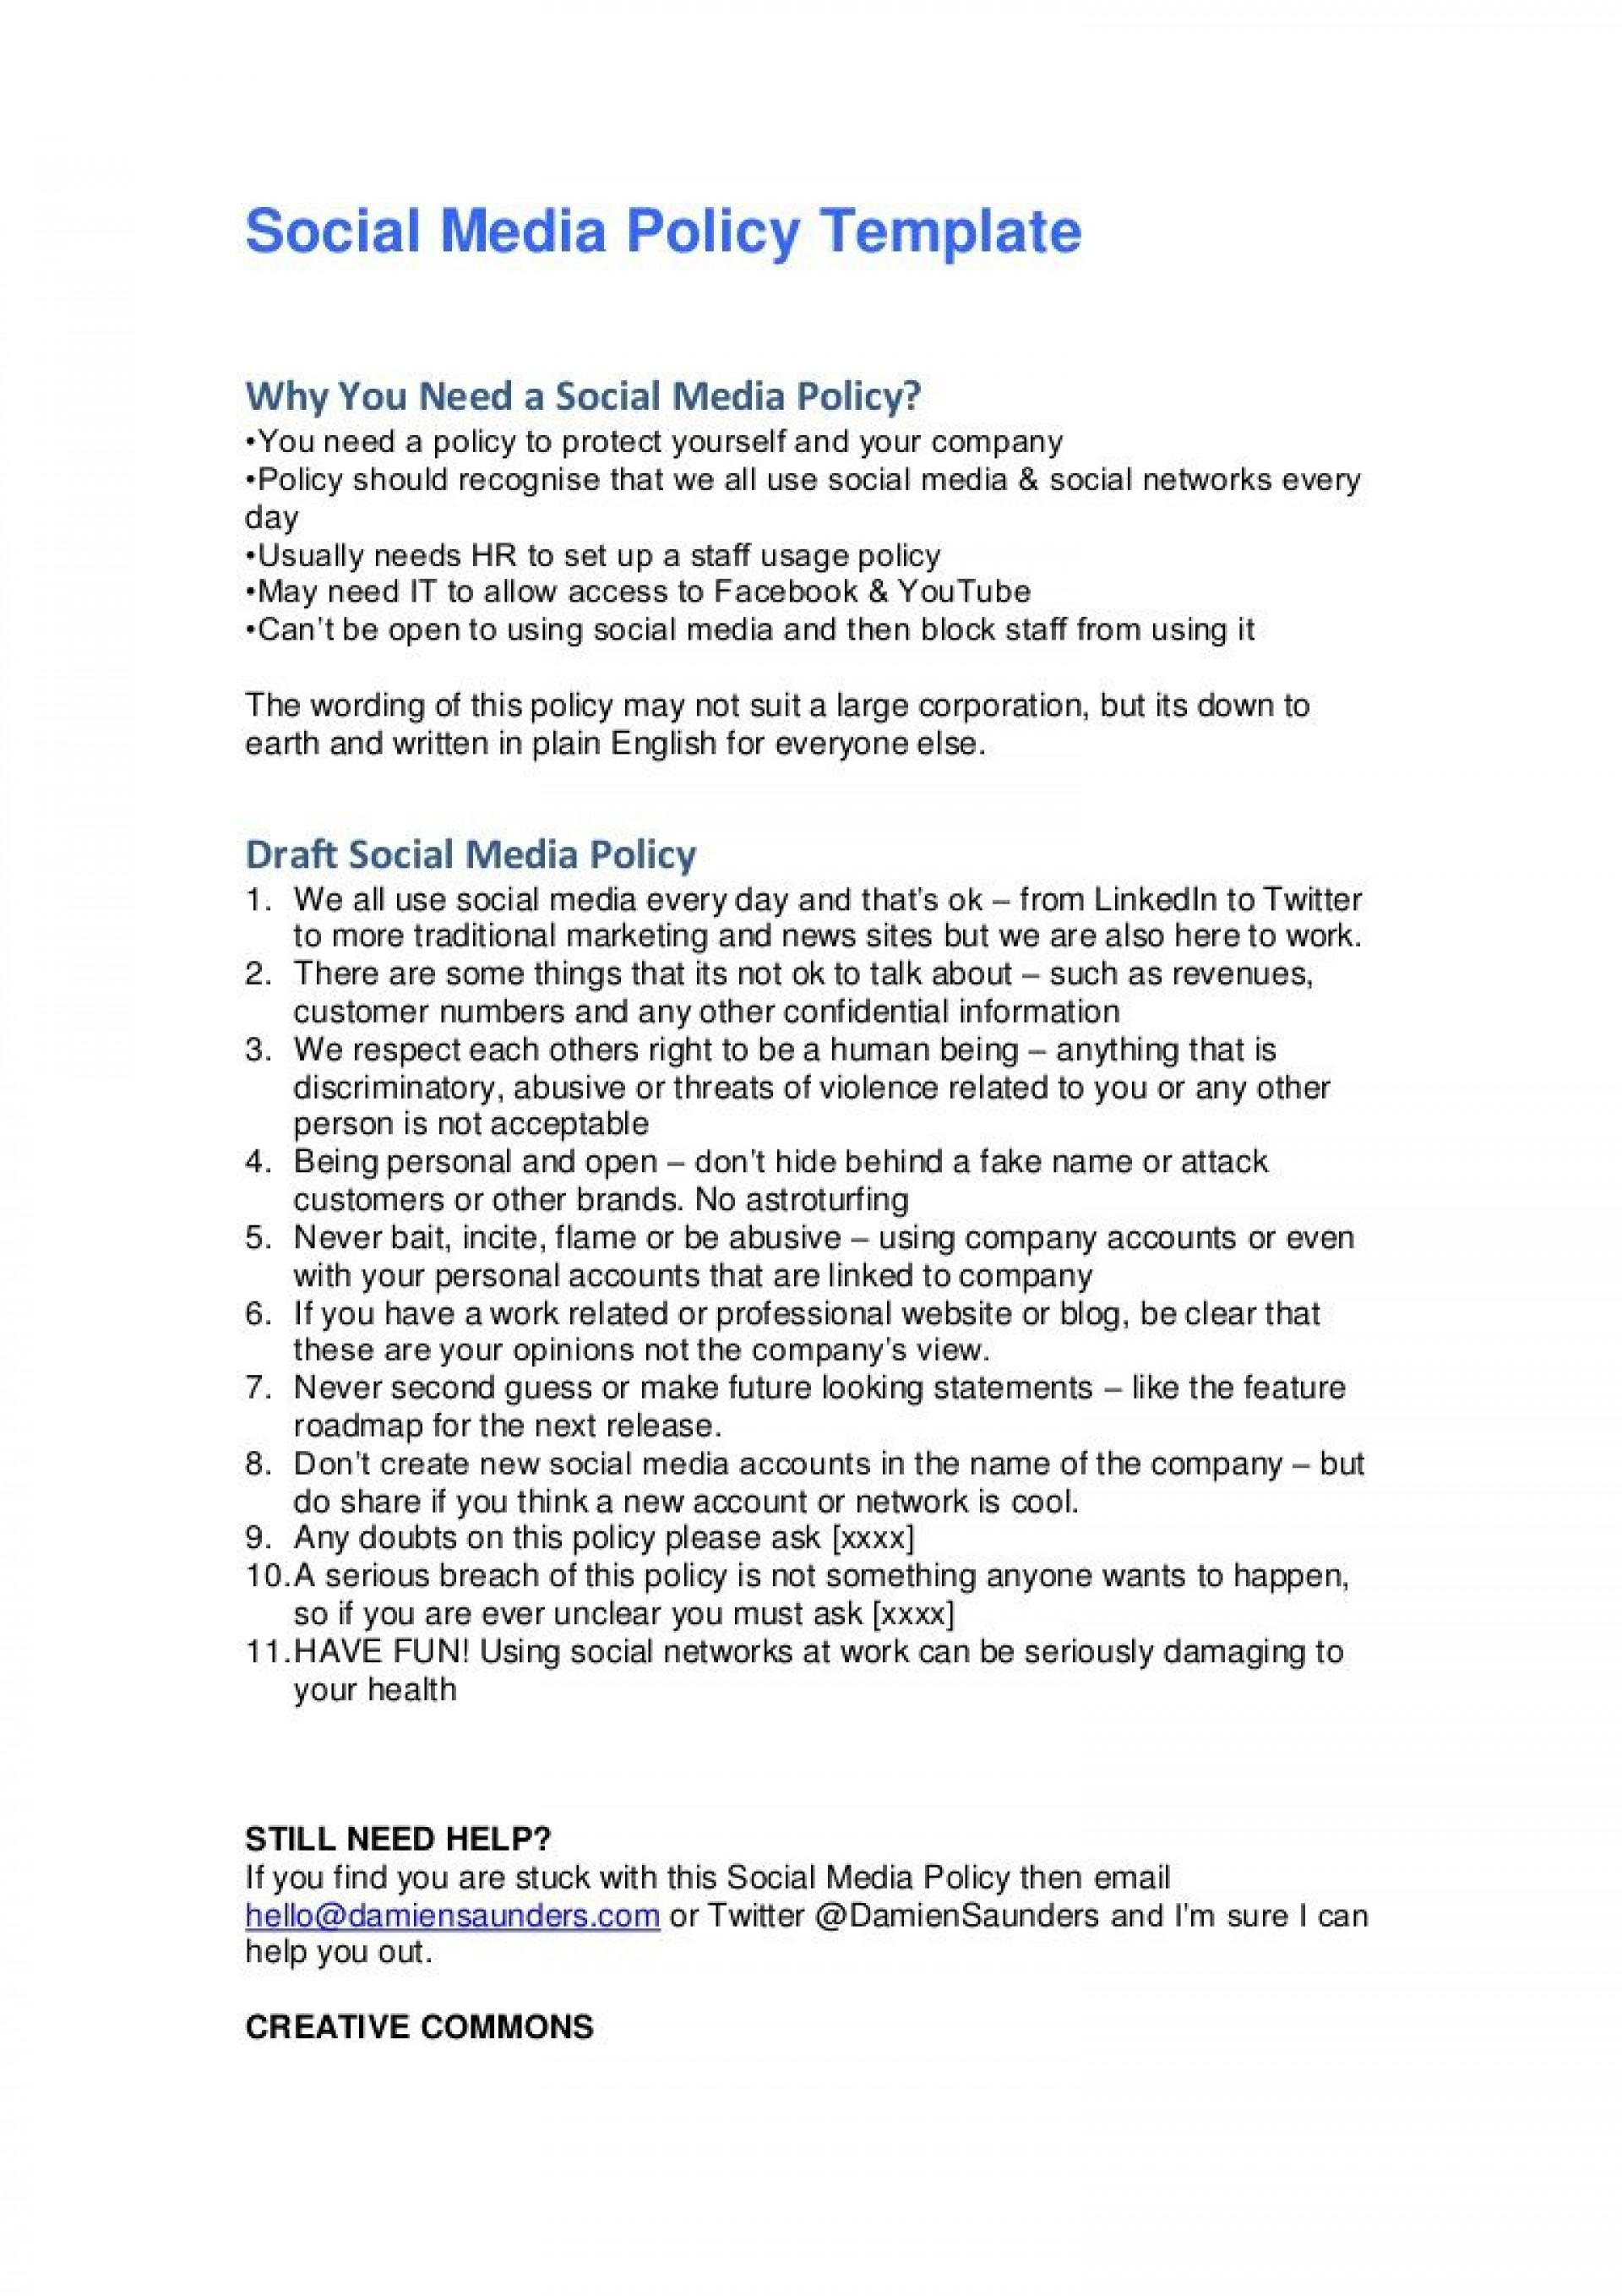 008 Simple Social Media Policie Template Example  Policy For Busines Nonprofit Australia Small1920